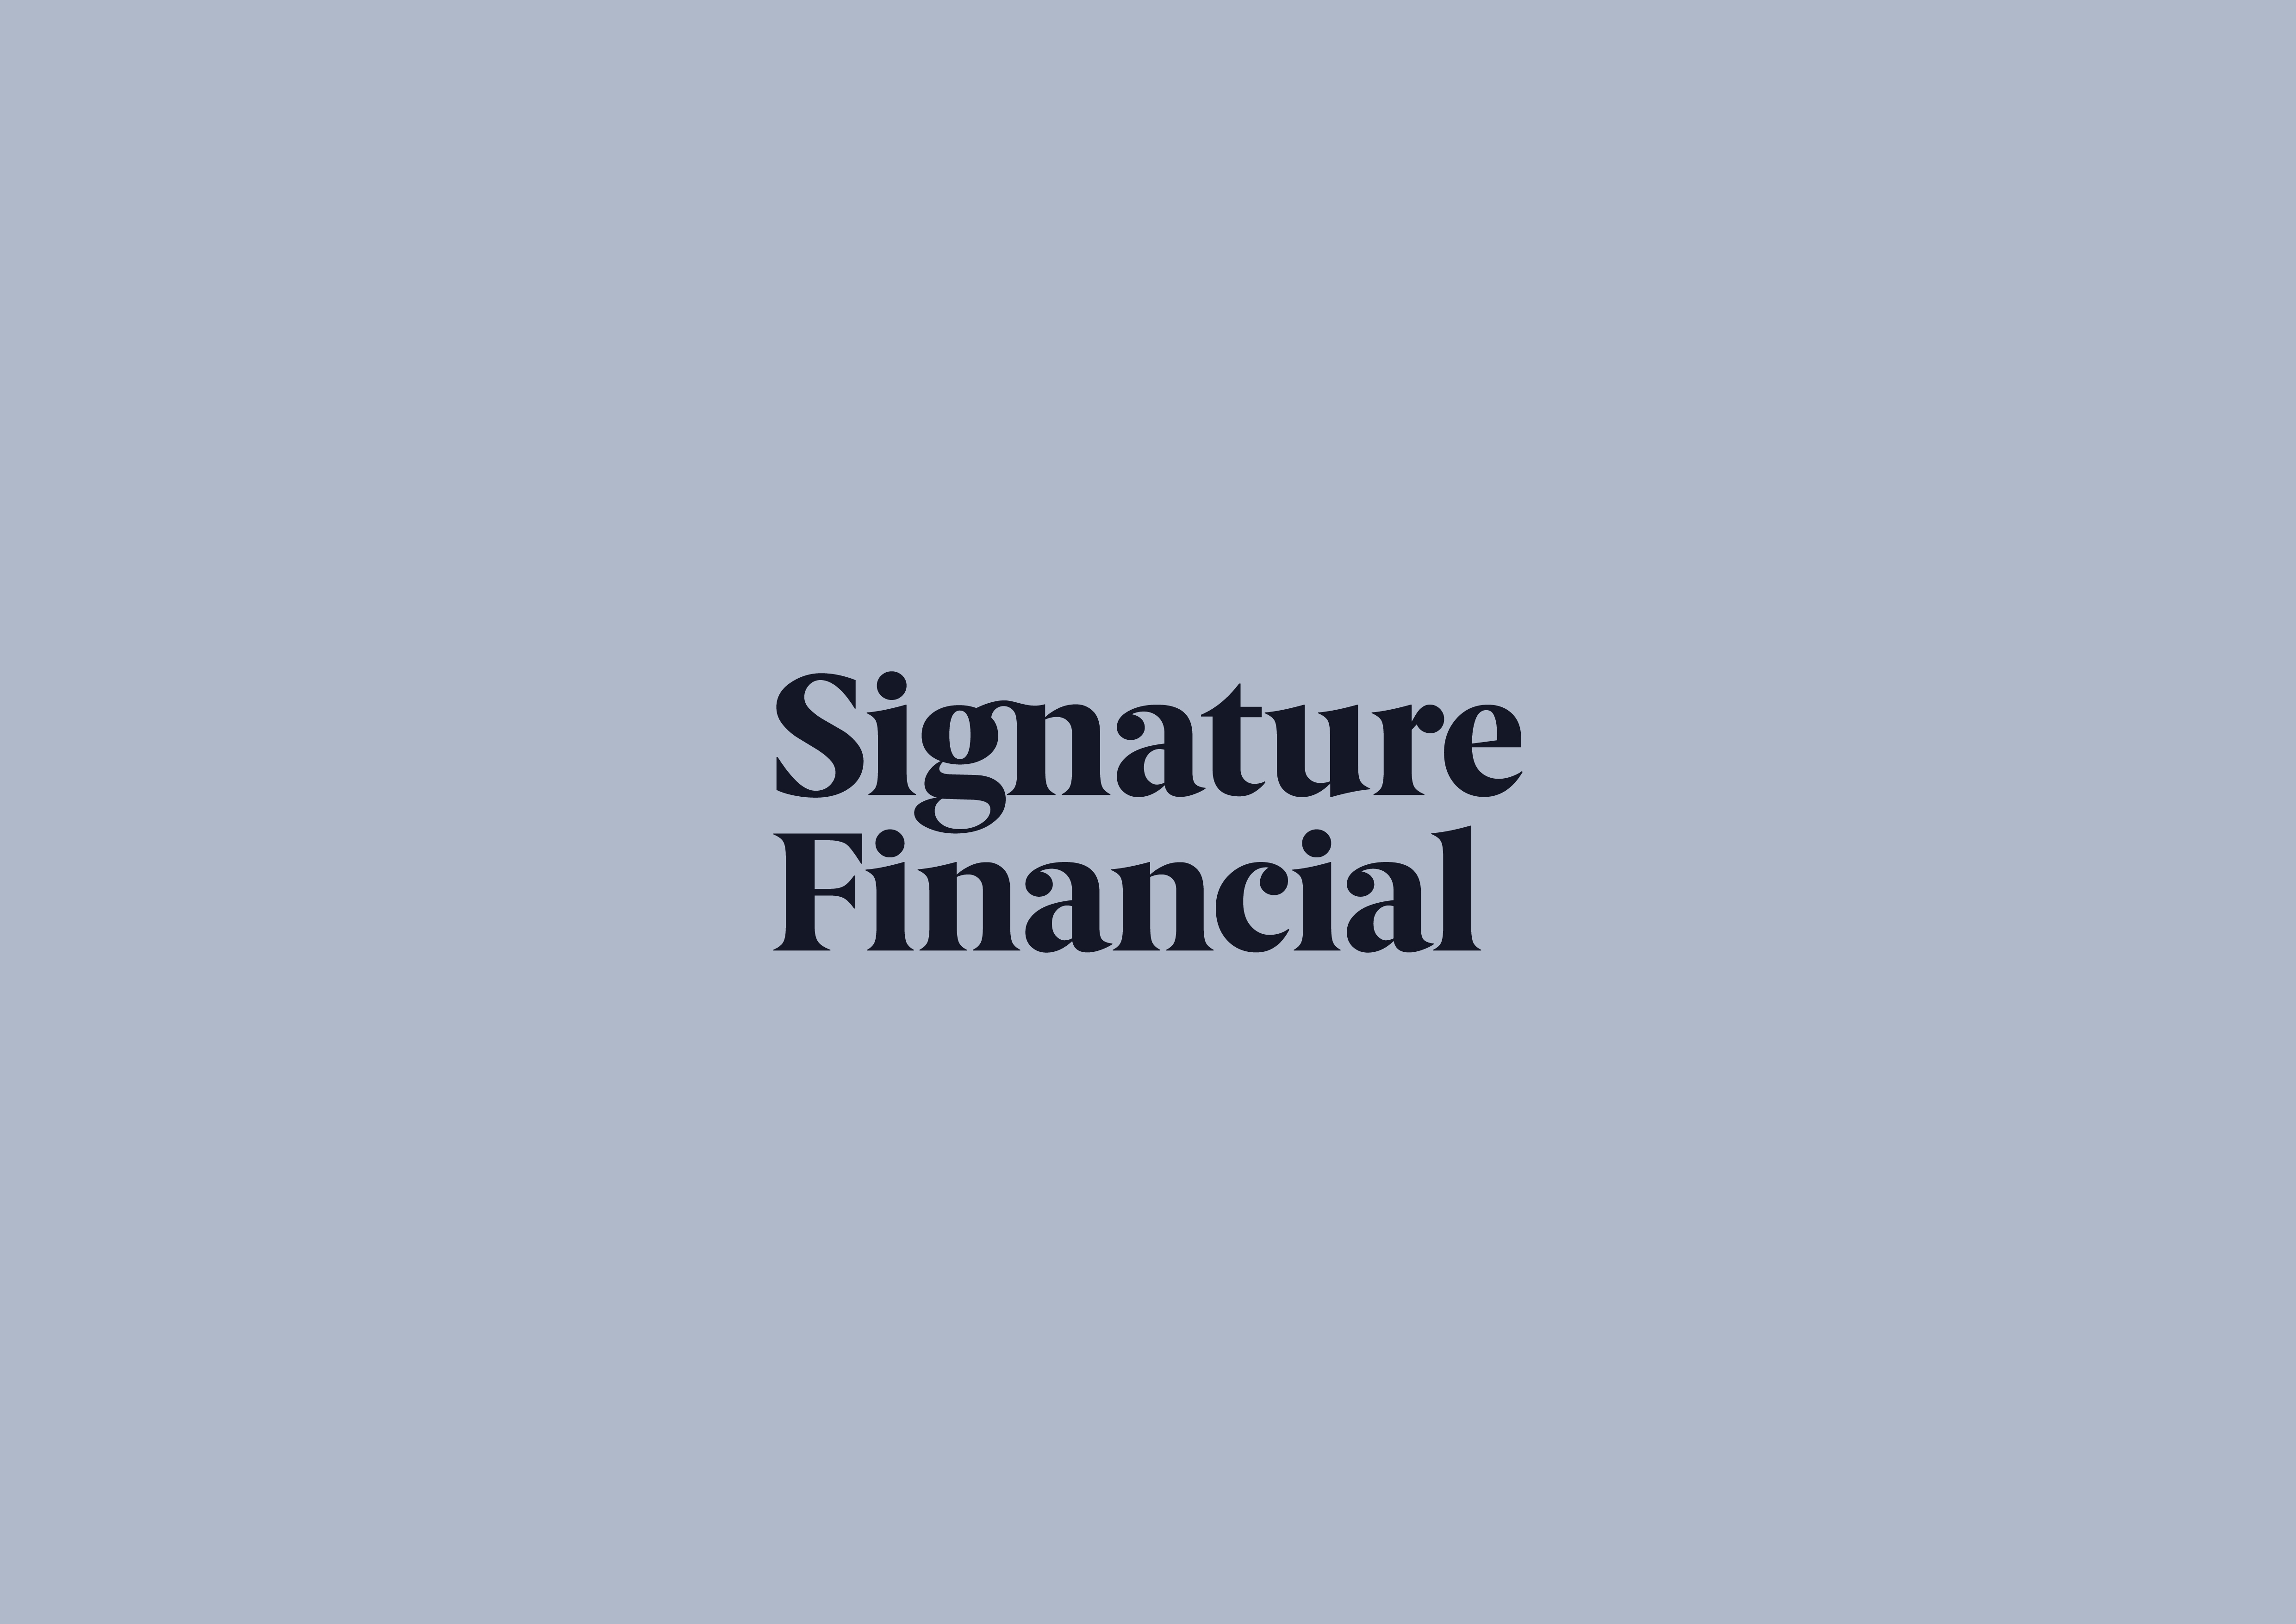 Cover image: Signature Financial